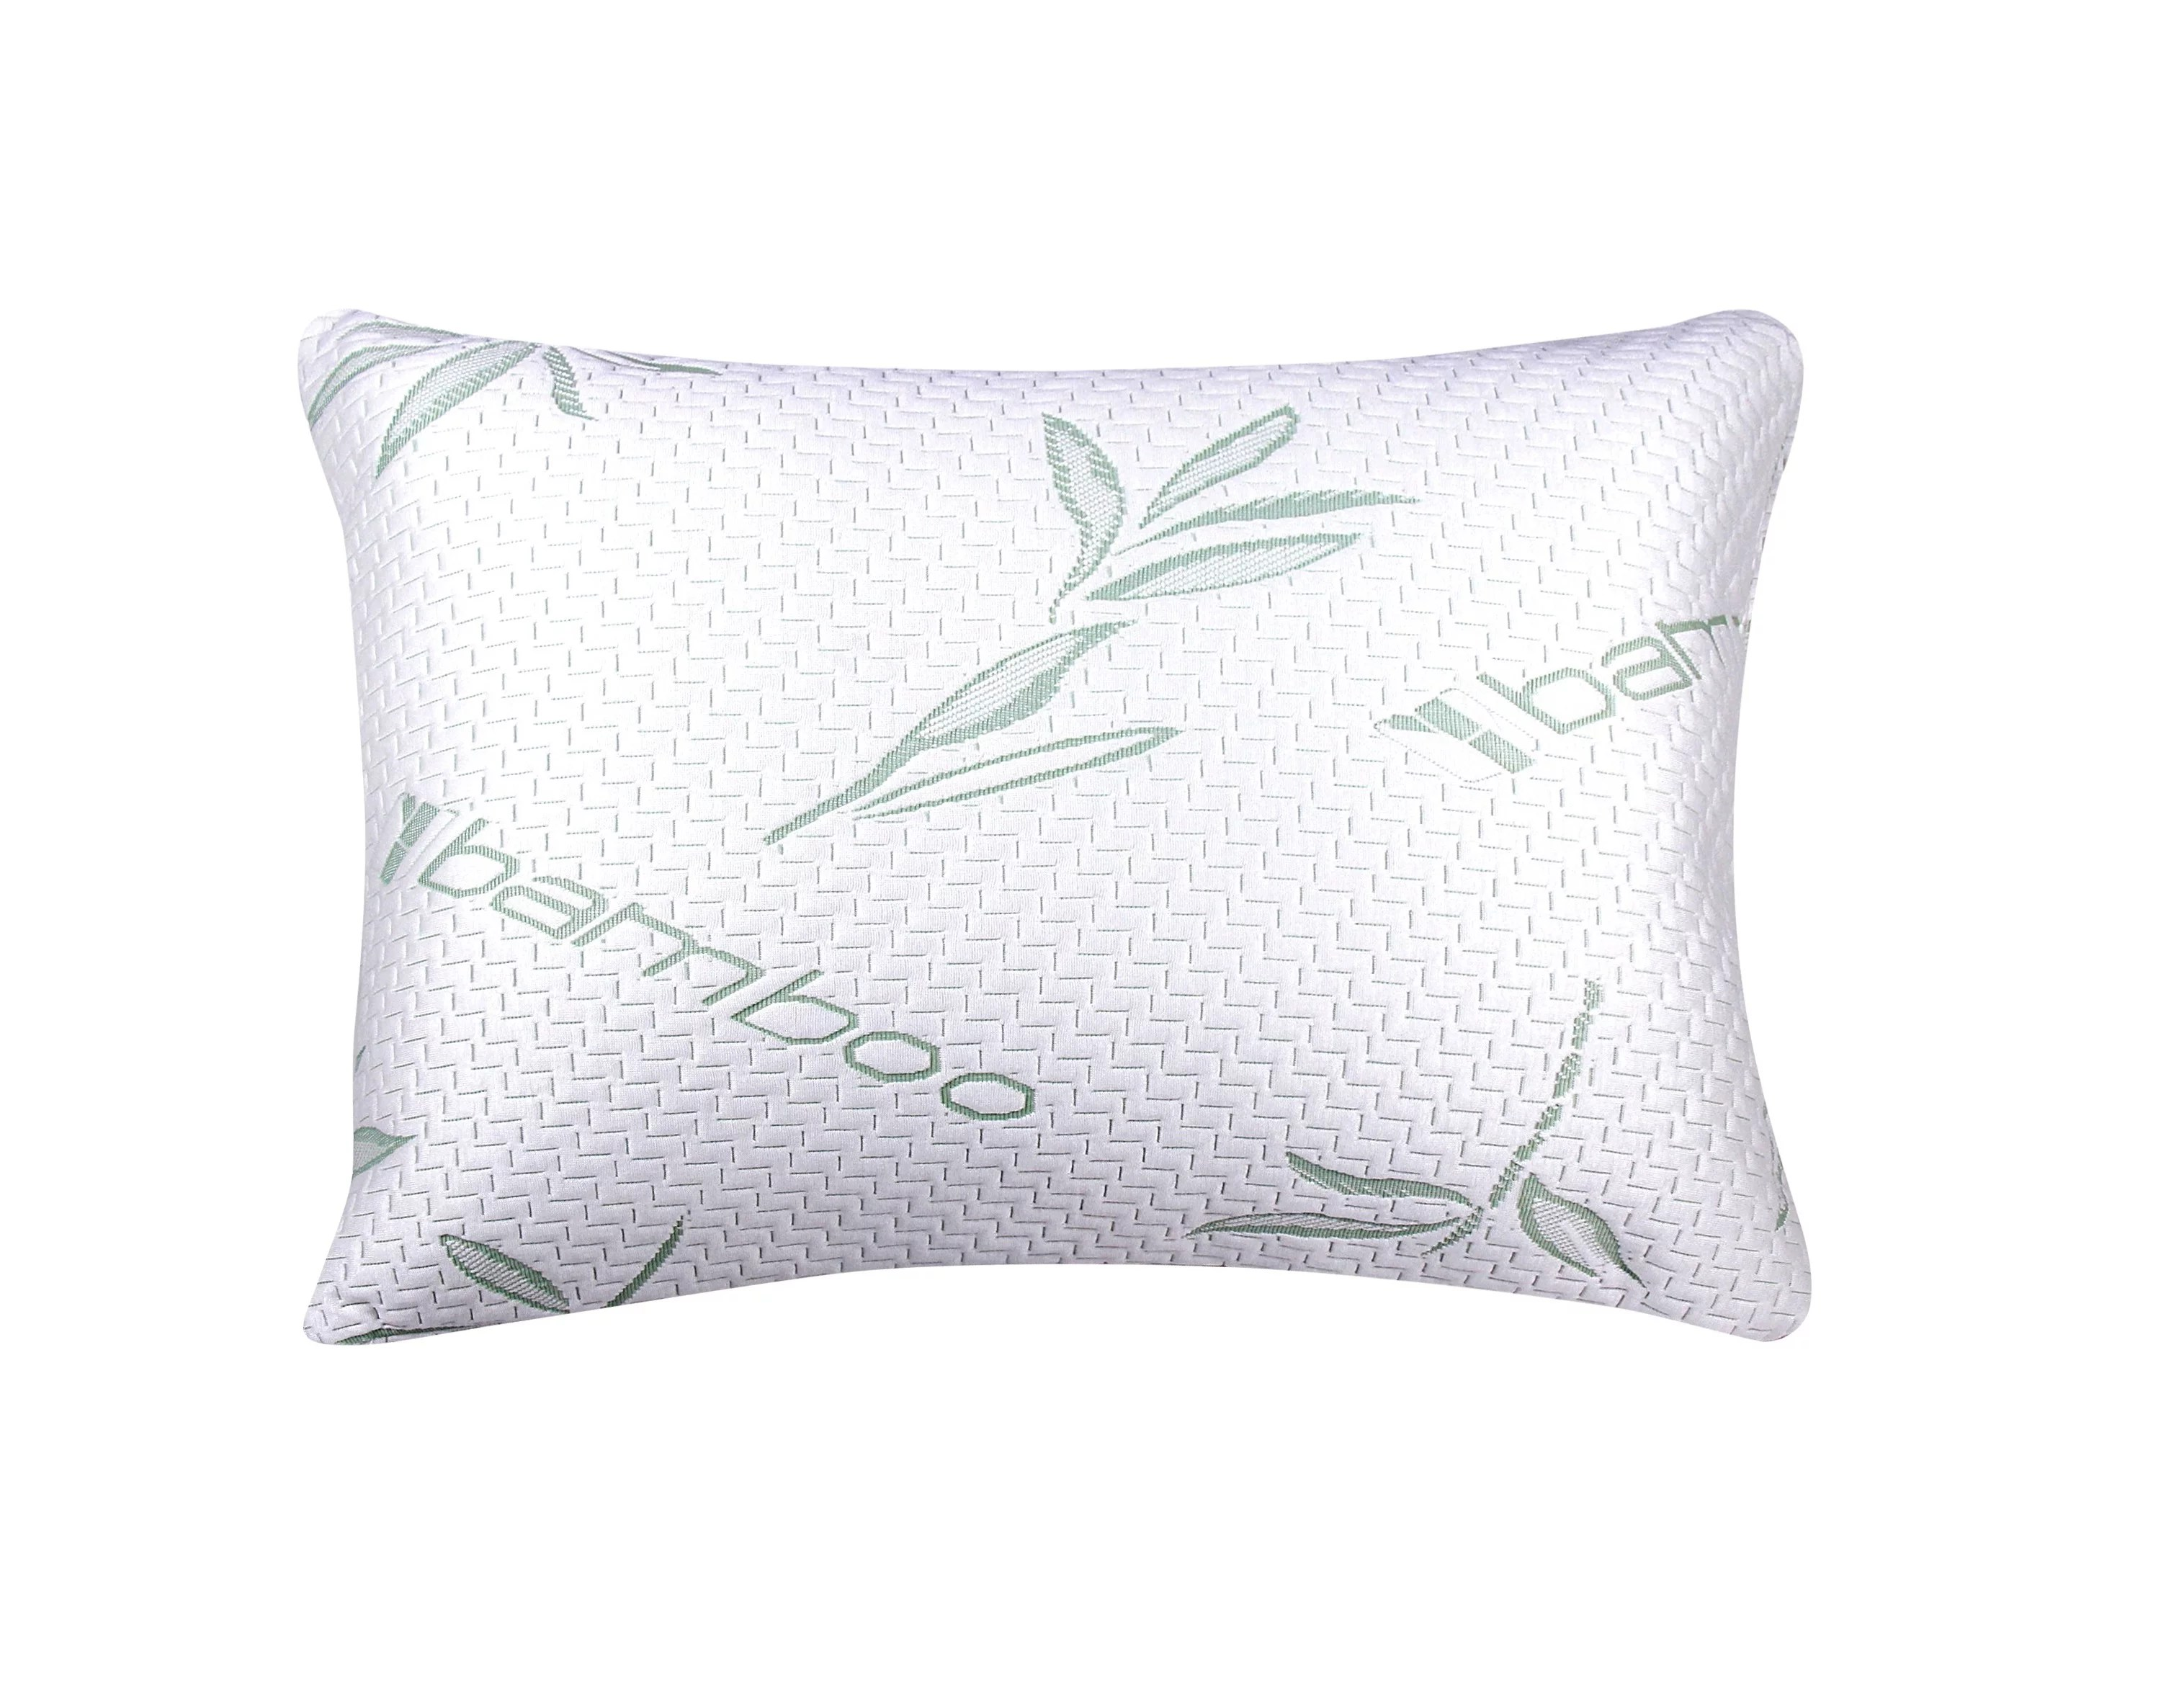 memory foam allergy free hypoallergenic cover comfort cooling bamboo pillow standard queen single